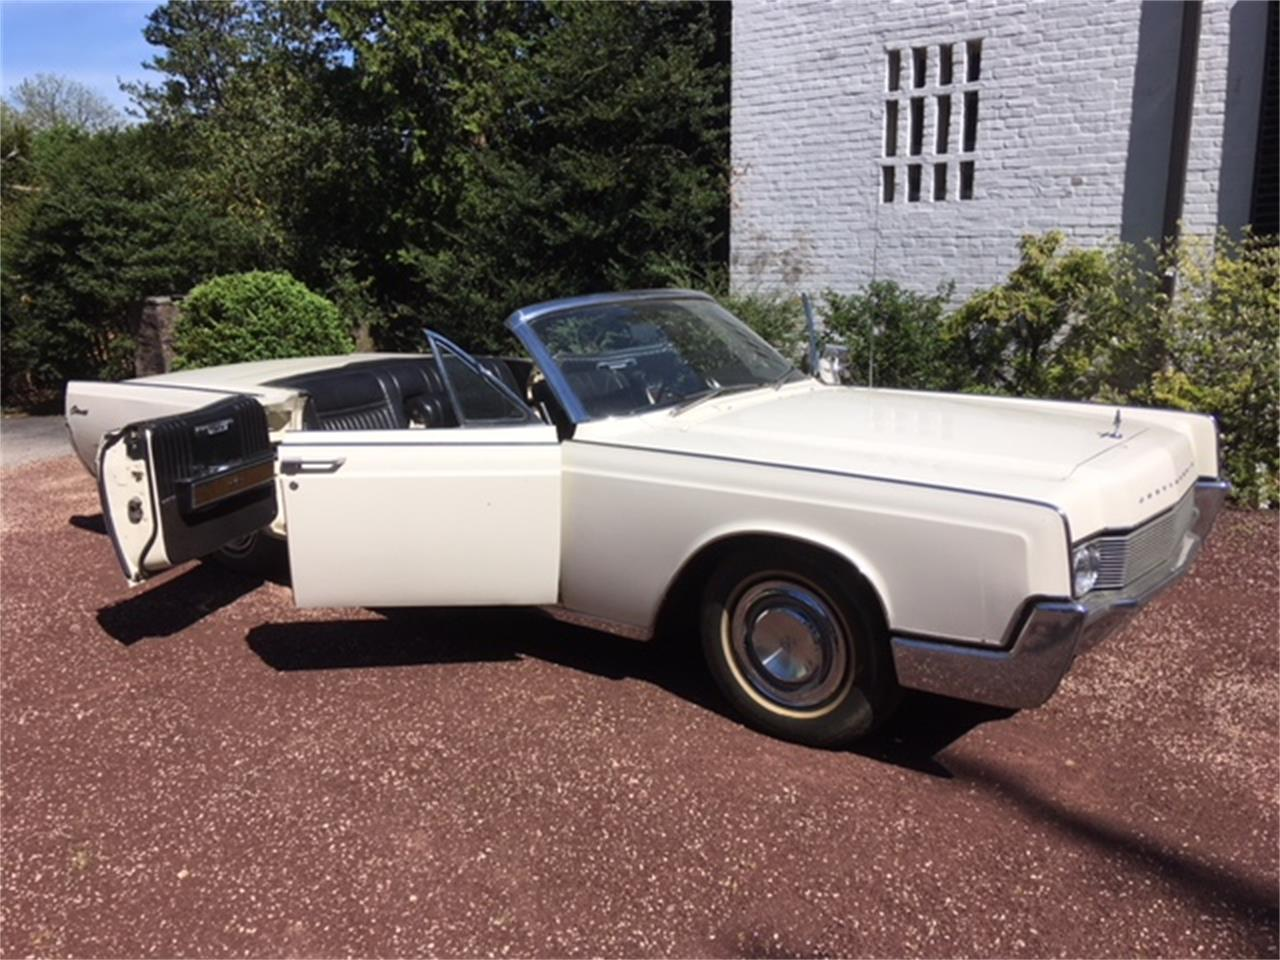 Large Picture of '67 Lincoln Continental located in Pennsylvania - $29,500.00 Offered by a Private Seller - OTOG